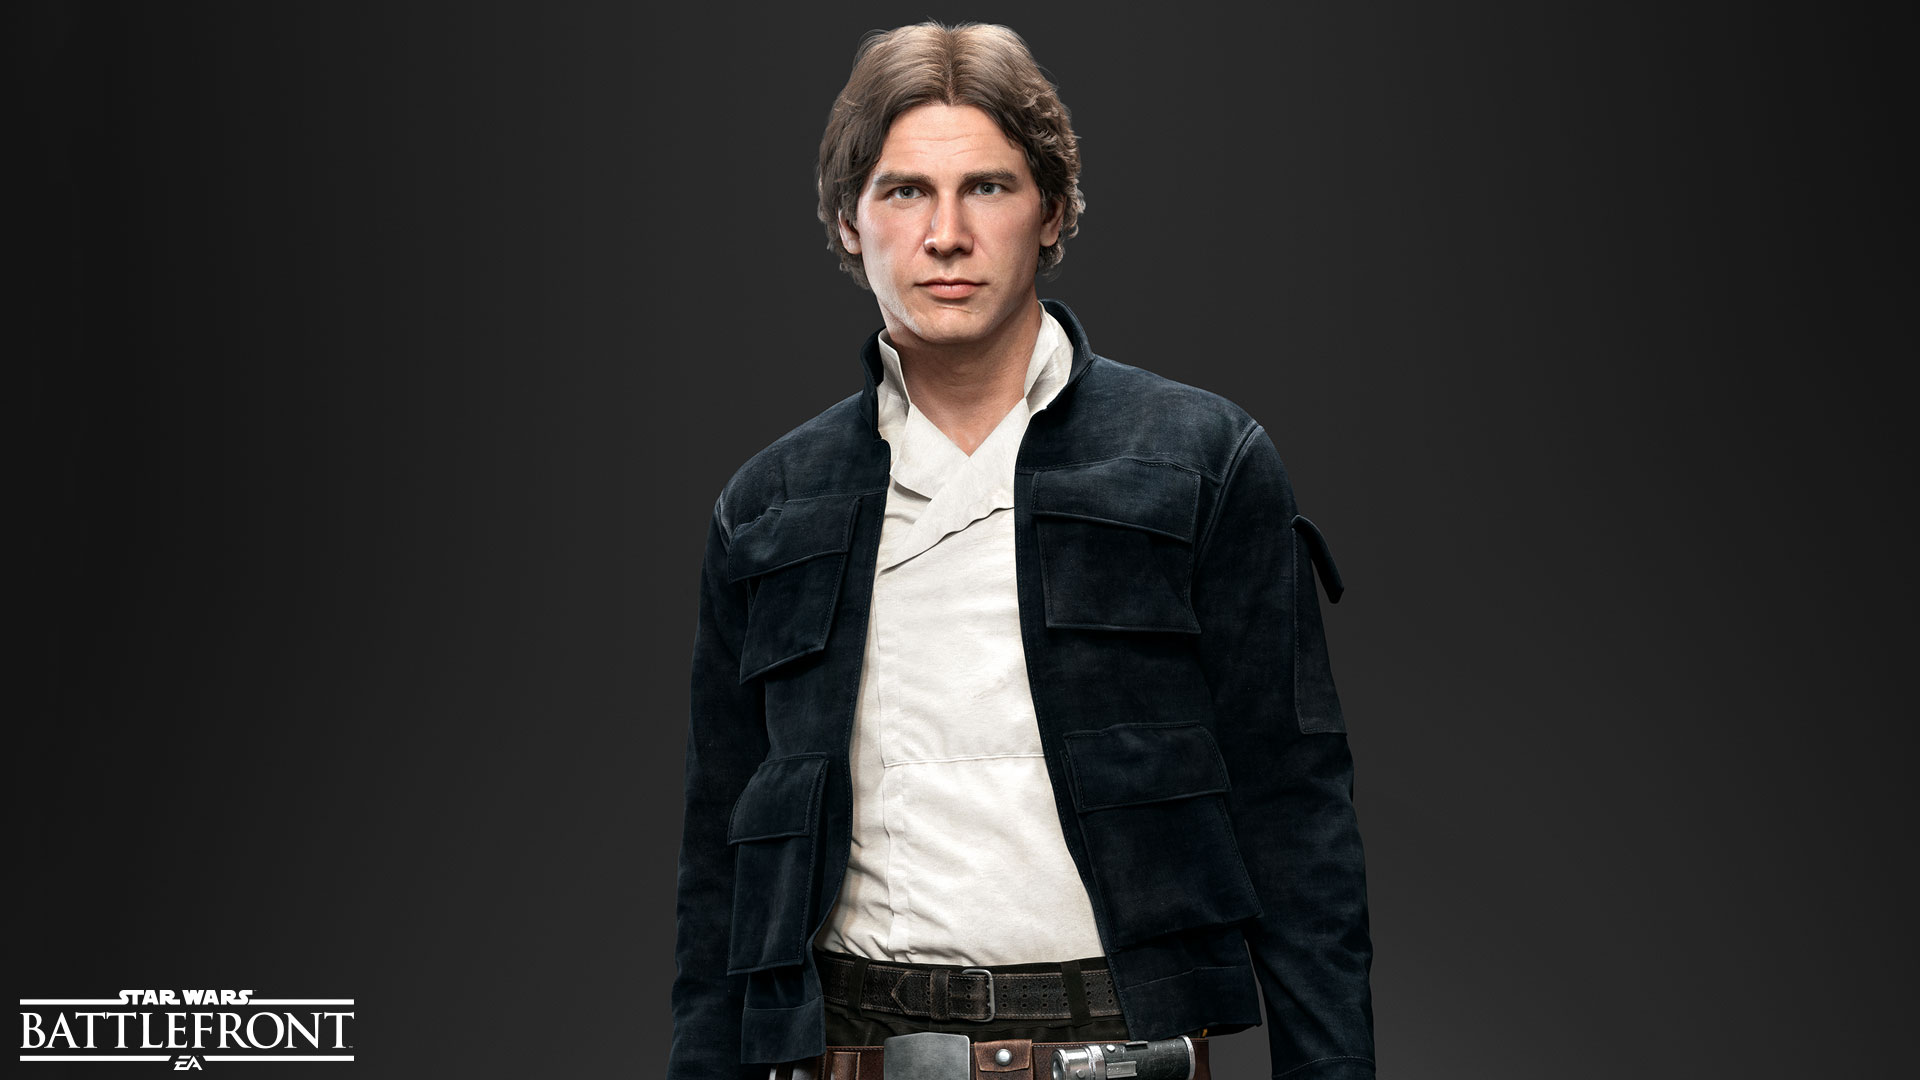 Image result for star wars battlefront 2 han solo